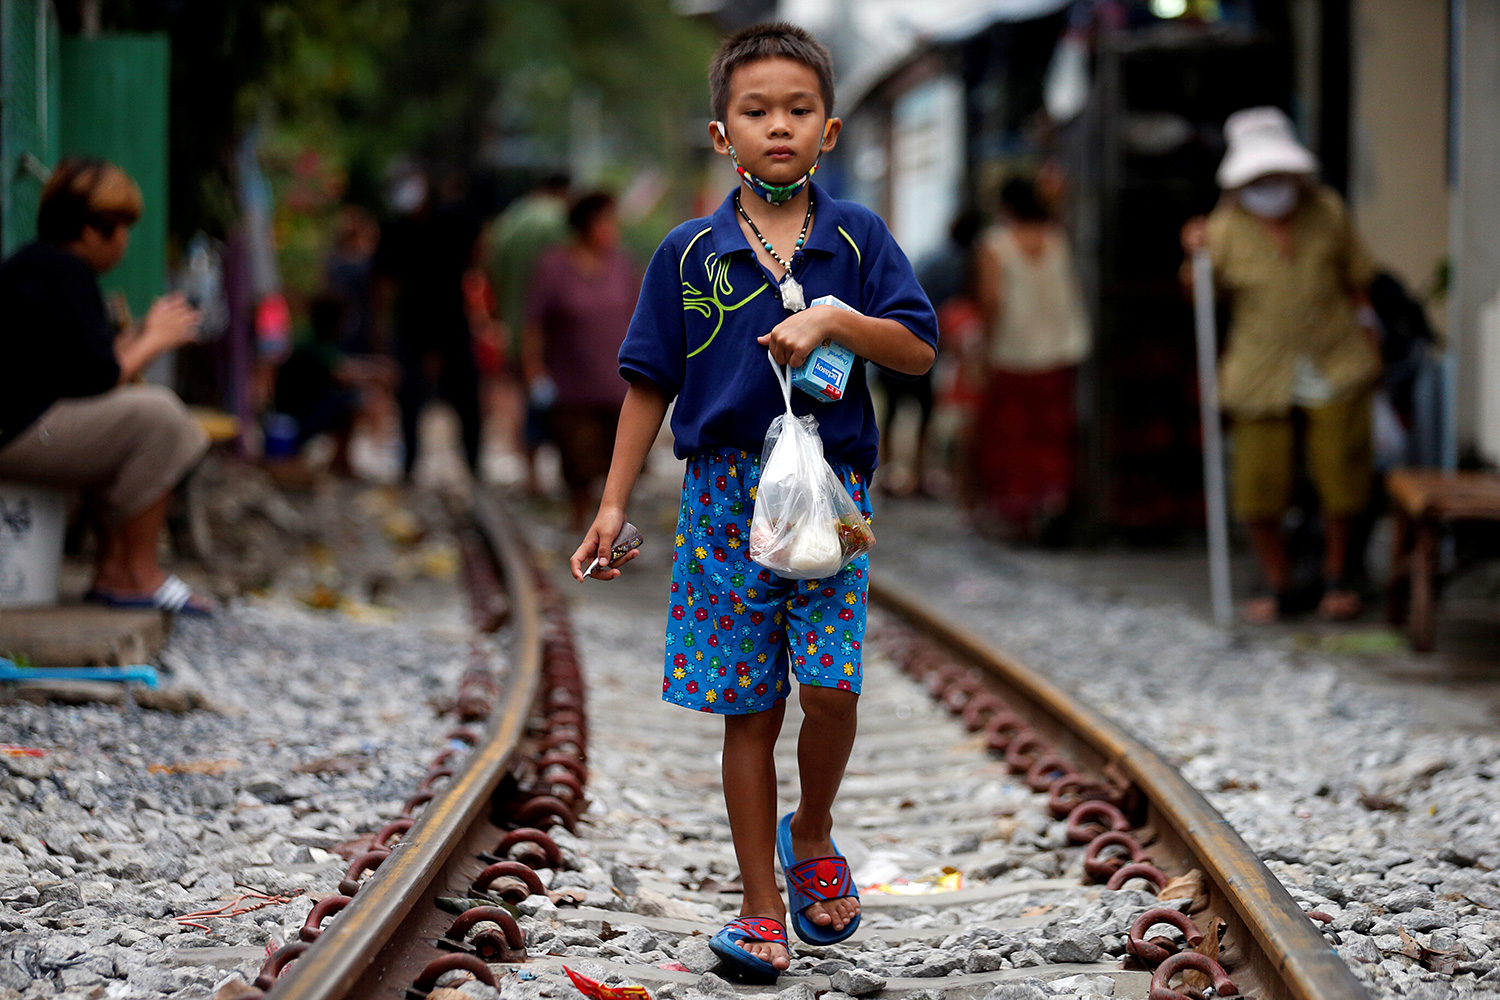 The picture shows a young boy holding a bag of food standing on railroad tracks.